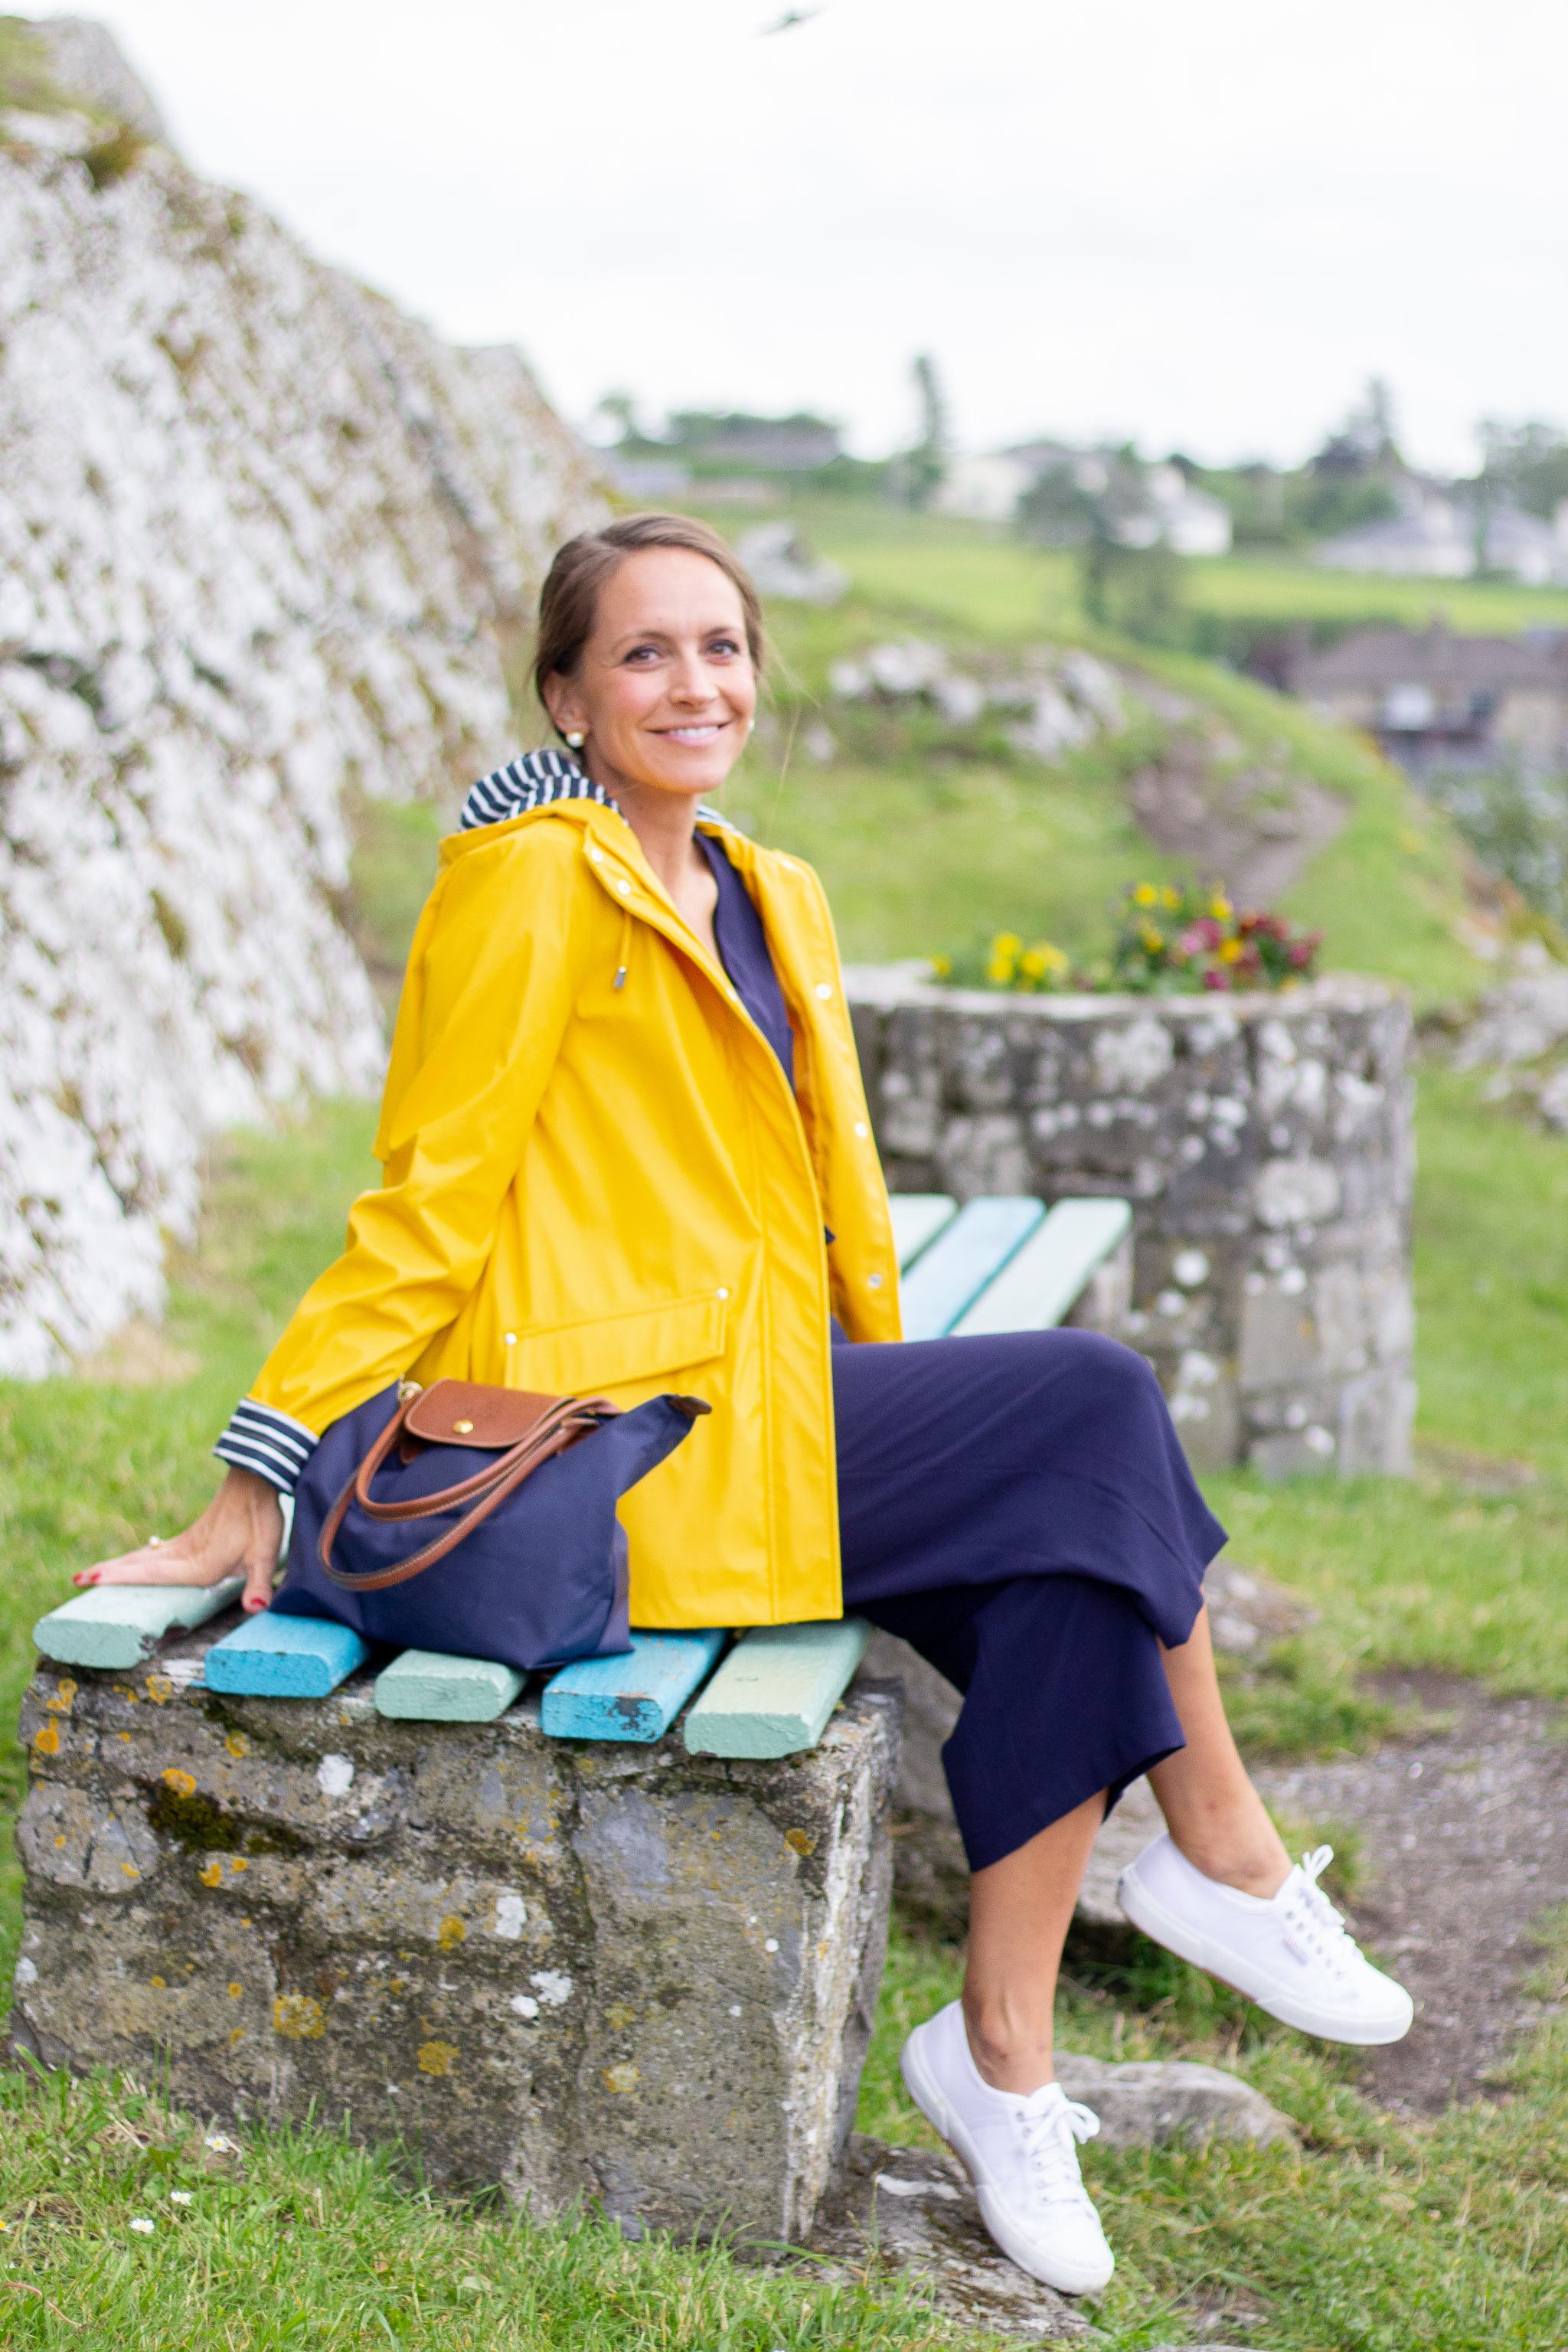 classic style - maternity style - second trimester outfit idea - pregnancy style - jumpsuit and sneakers - superga sneakers - white superga sneakers - superga cotu sneakers - yellow rain jacket - traveling in ireland - rock of cashel - blue and yellow outfit